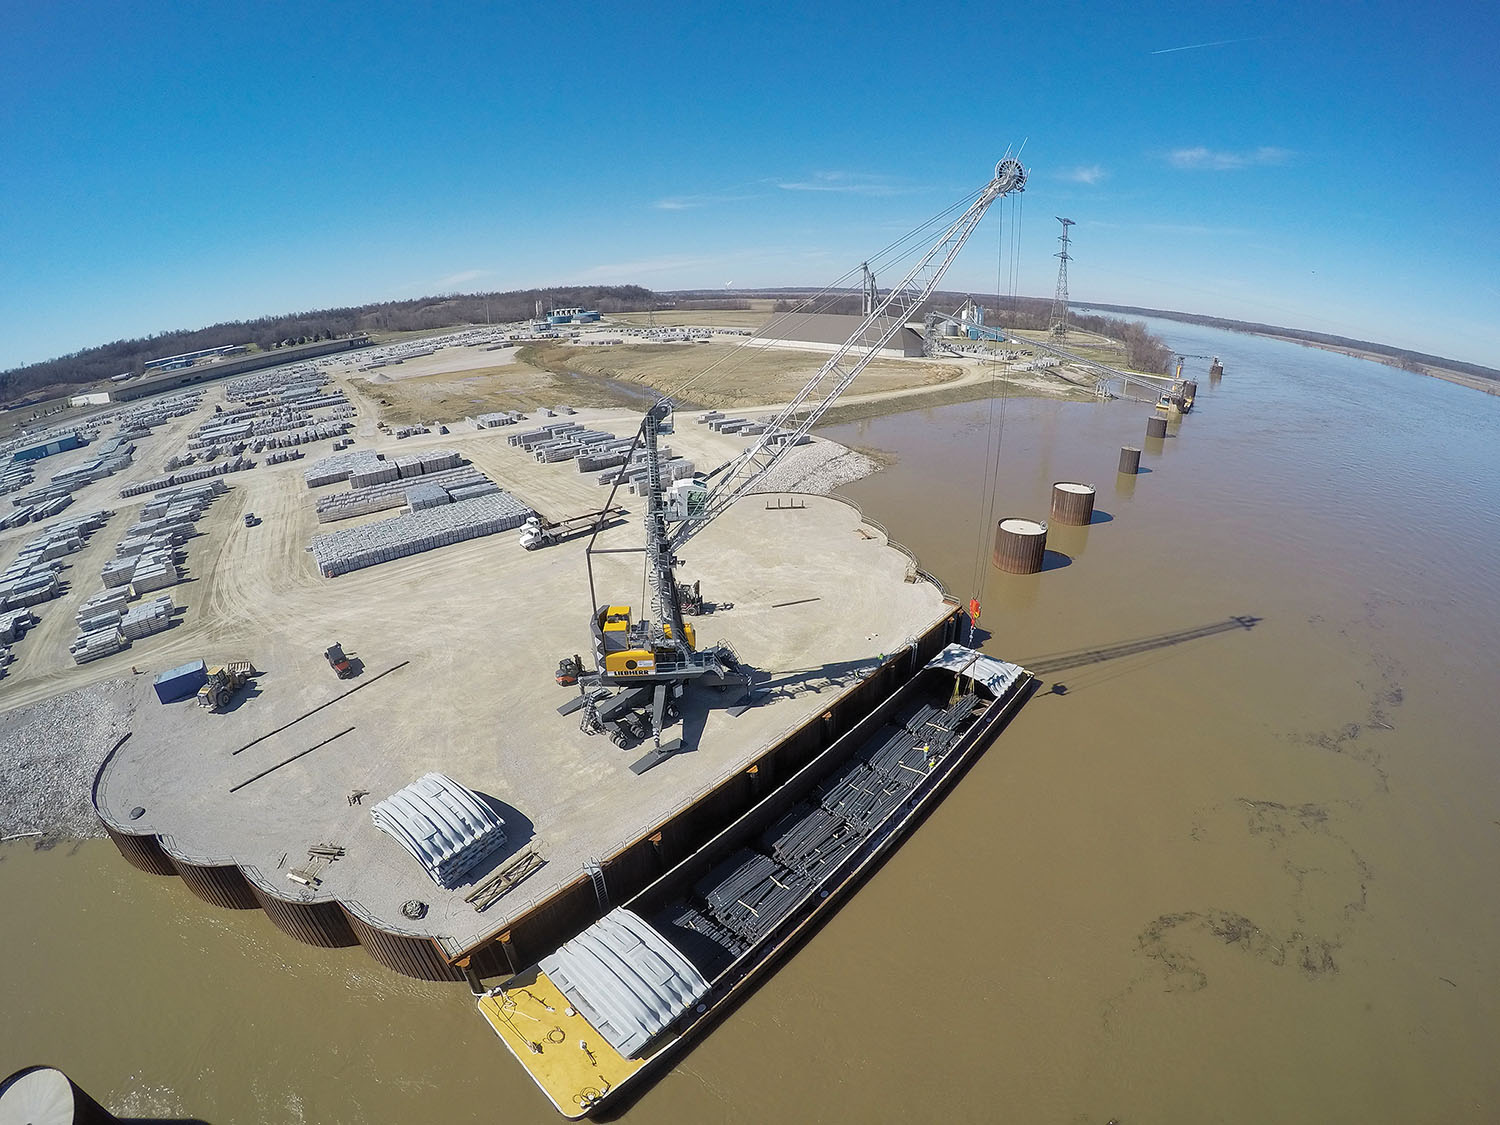 The Owensboro (Ky.) Riverport is utilizing a BUILD grant for road improvements from U.S. 60 to the port and to the main port access road. The port also plans to replace its material handler and spud barge. (Photo courtesy of the Owensboro Riverport Authority)